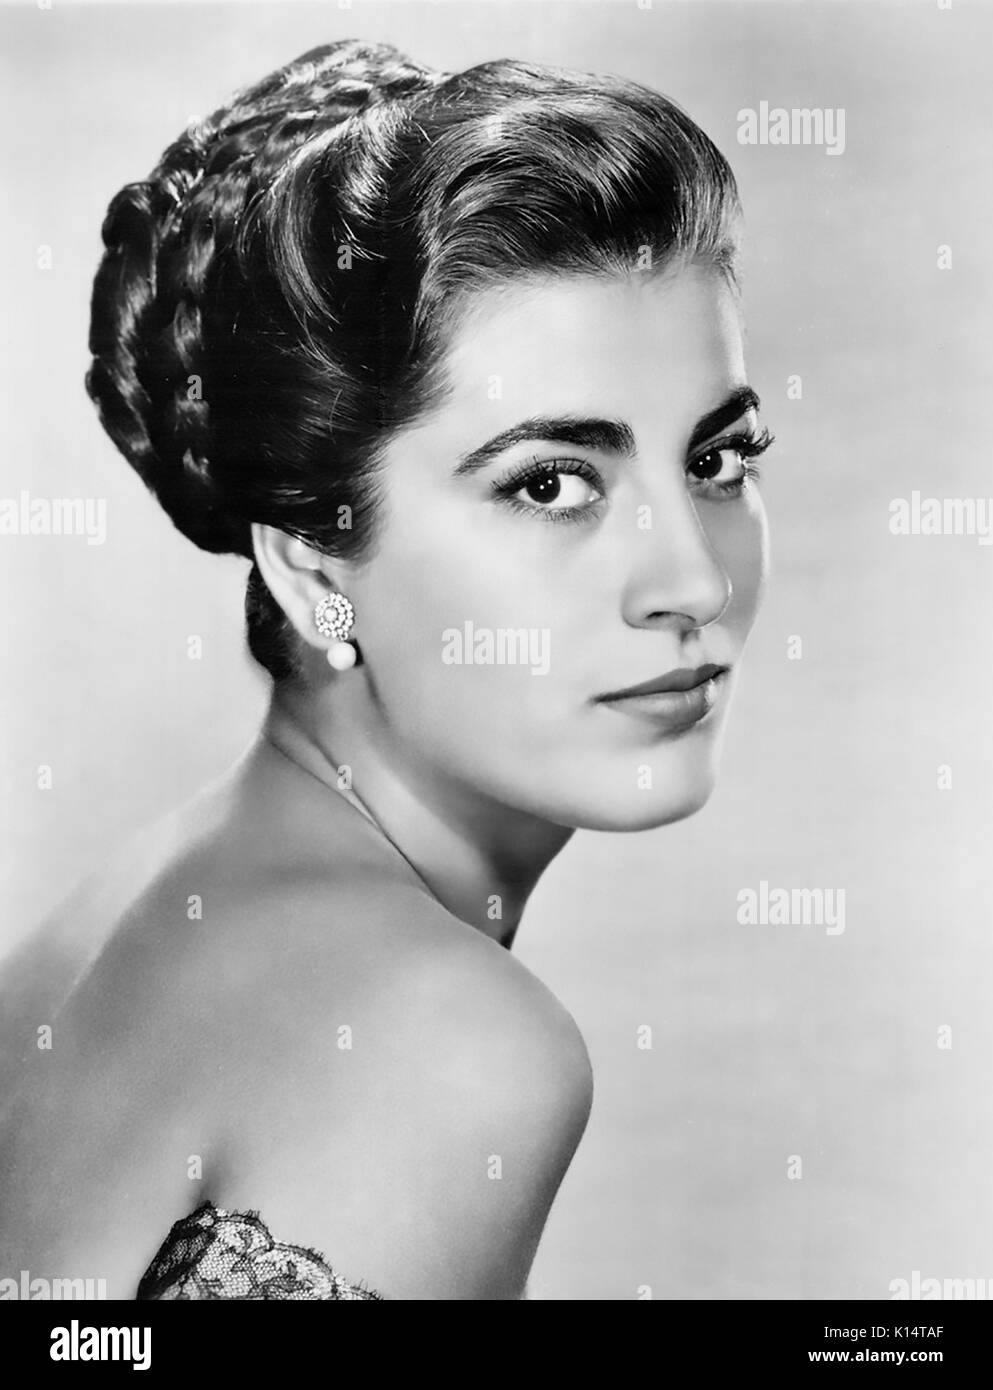 IRENE PAPAS Greek film actress while filming Tribute to a Bad Man in 1946 - Stock Image